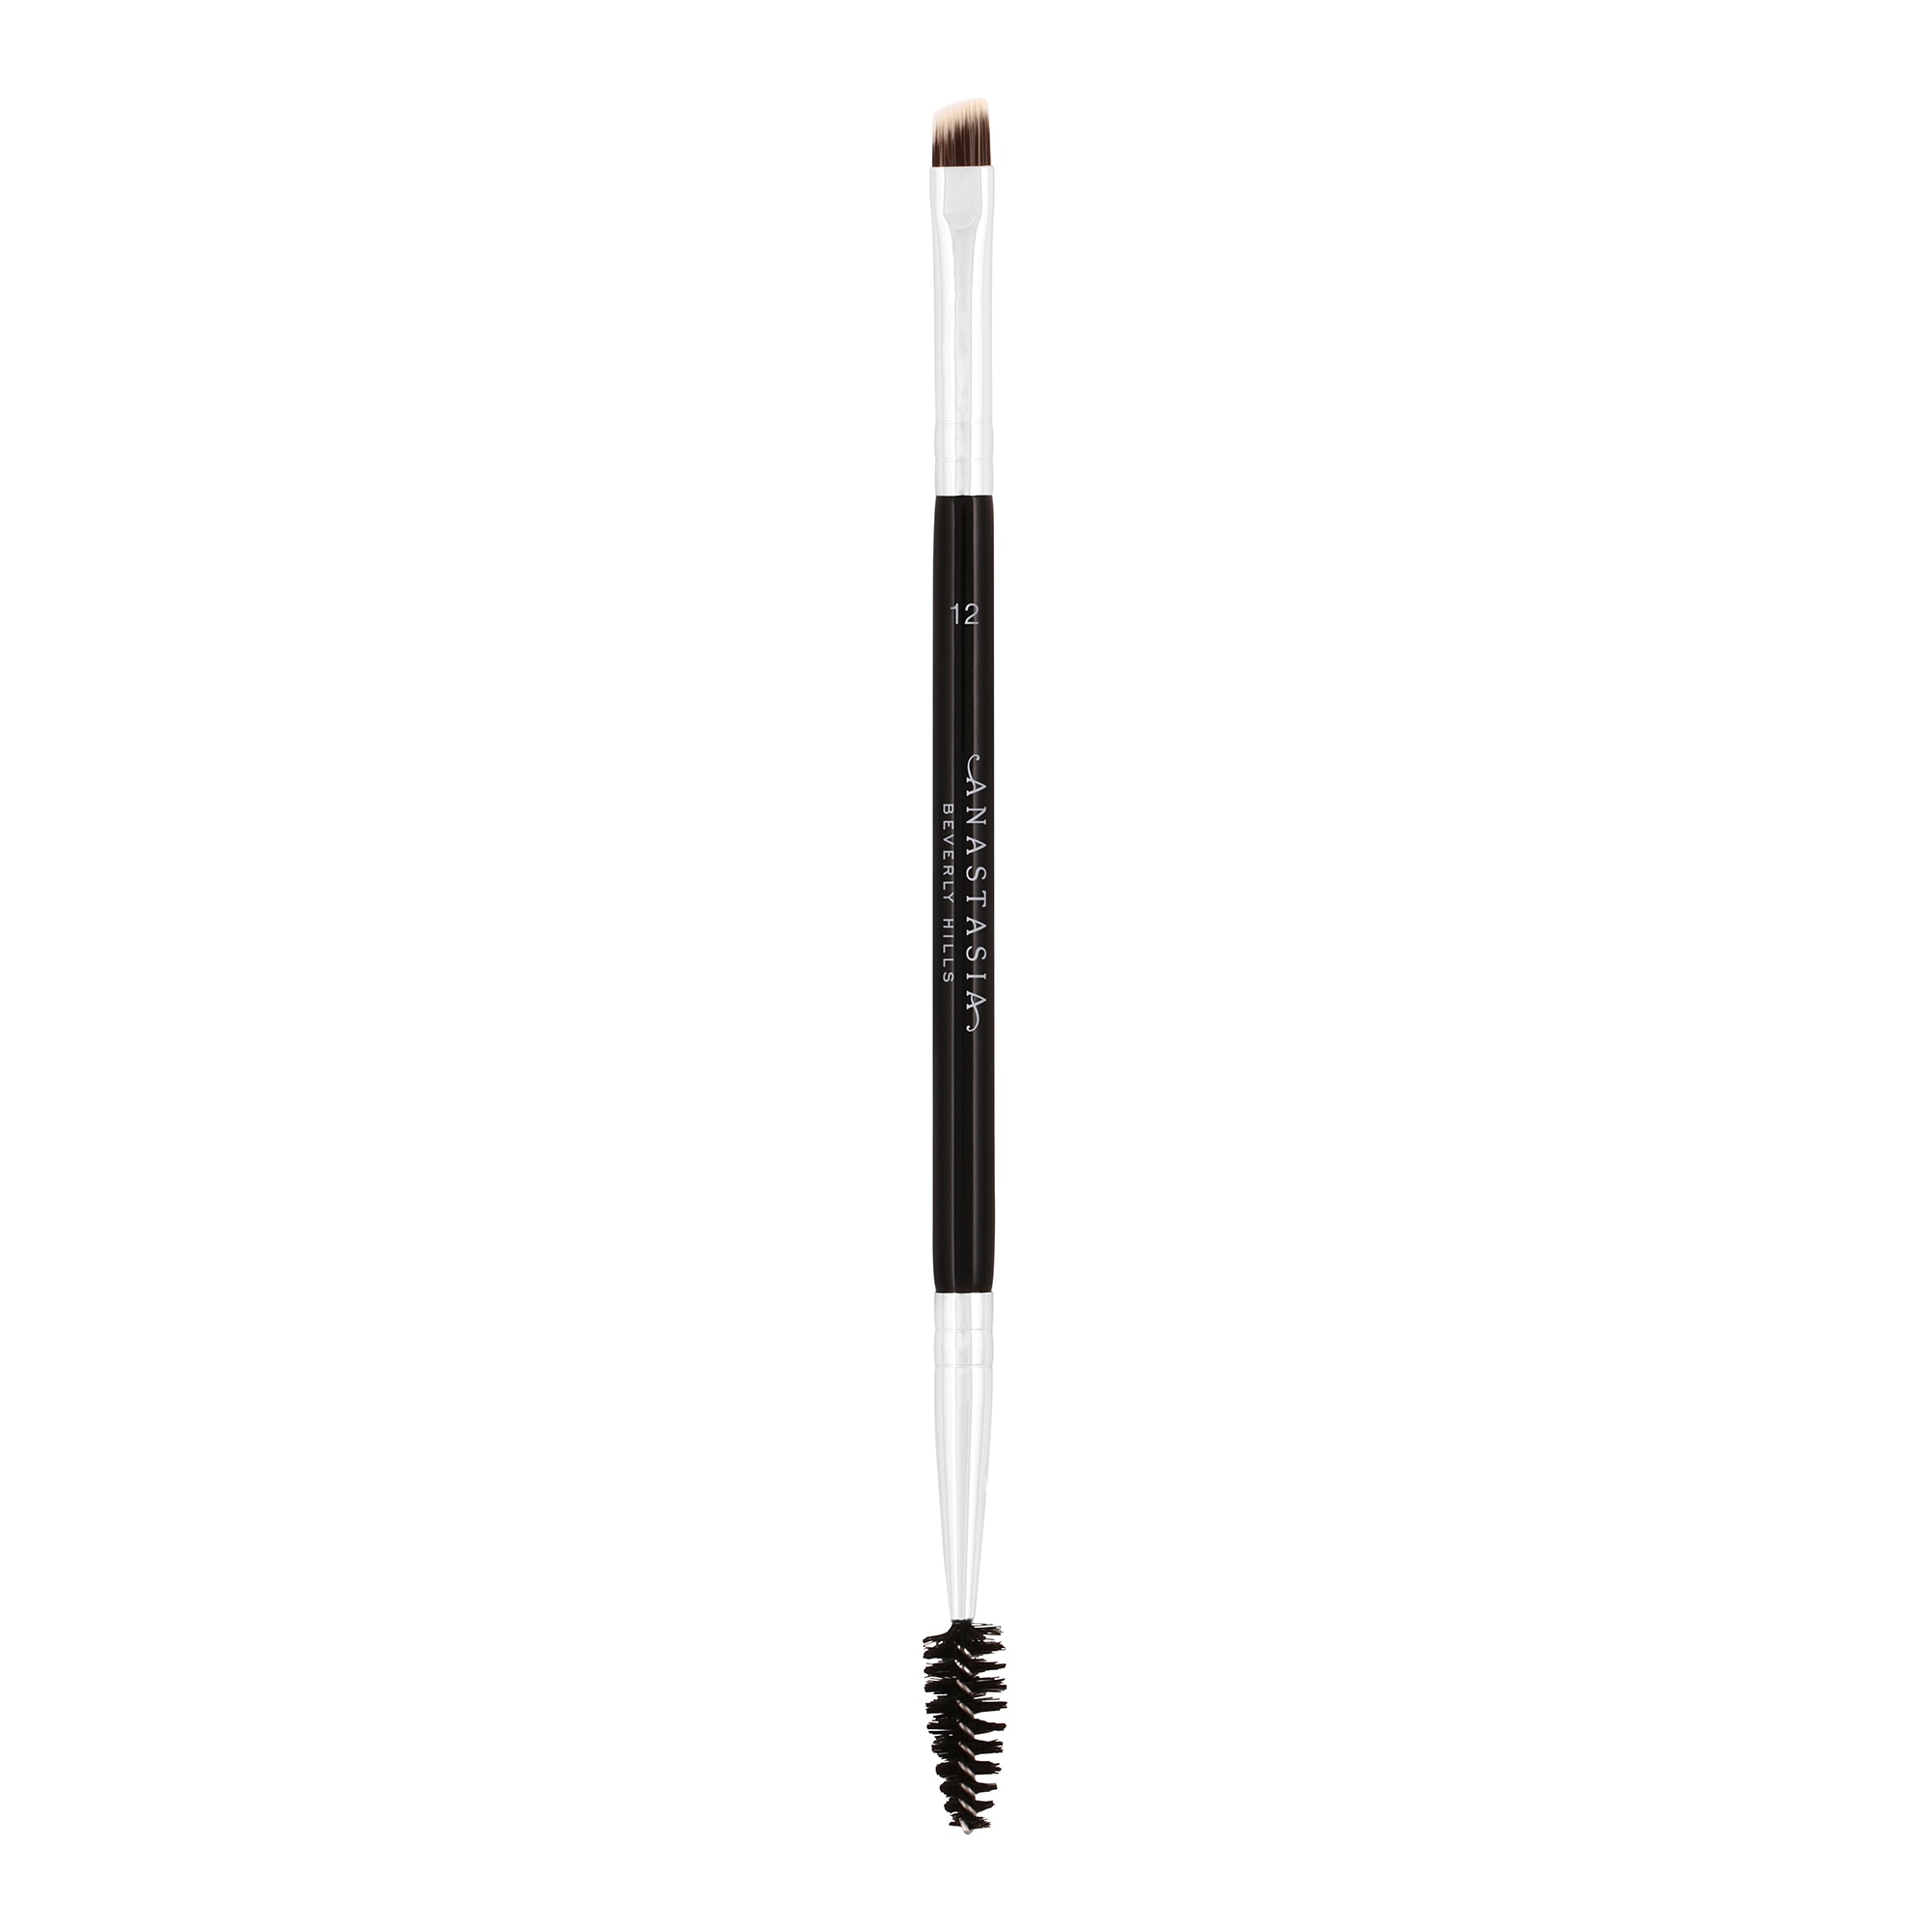 BRUSH #12 - DUAL ENDED FIRM ANGLED BRUSH